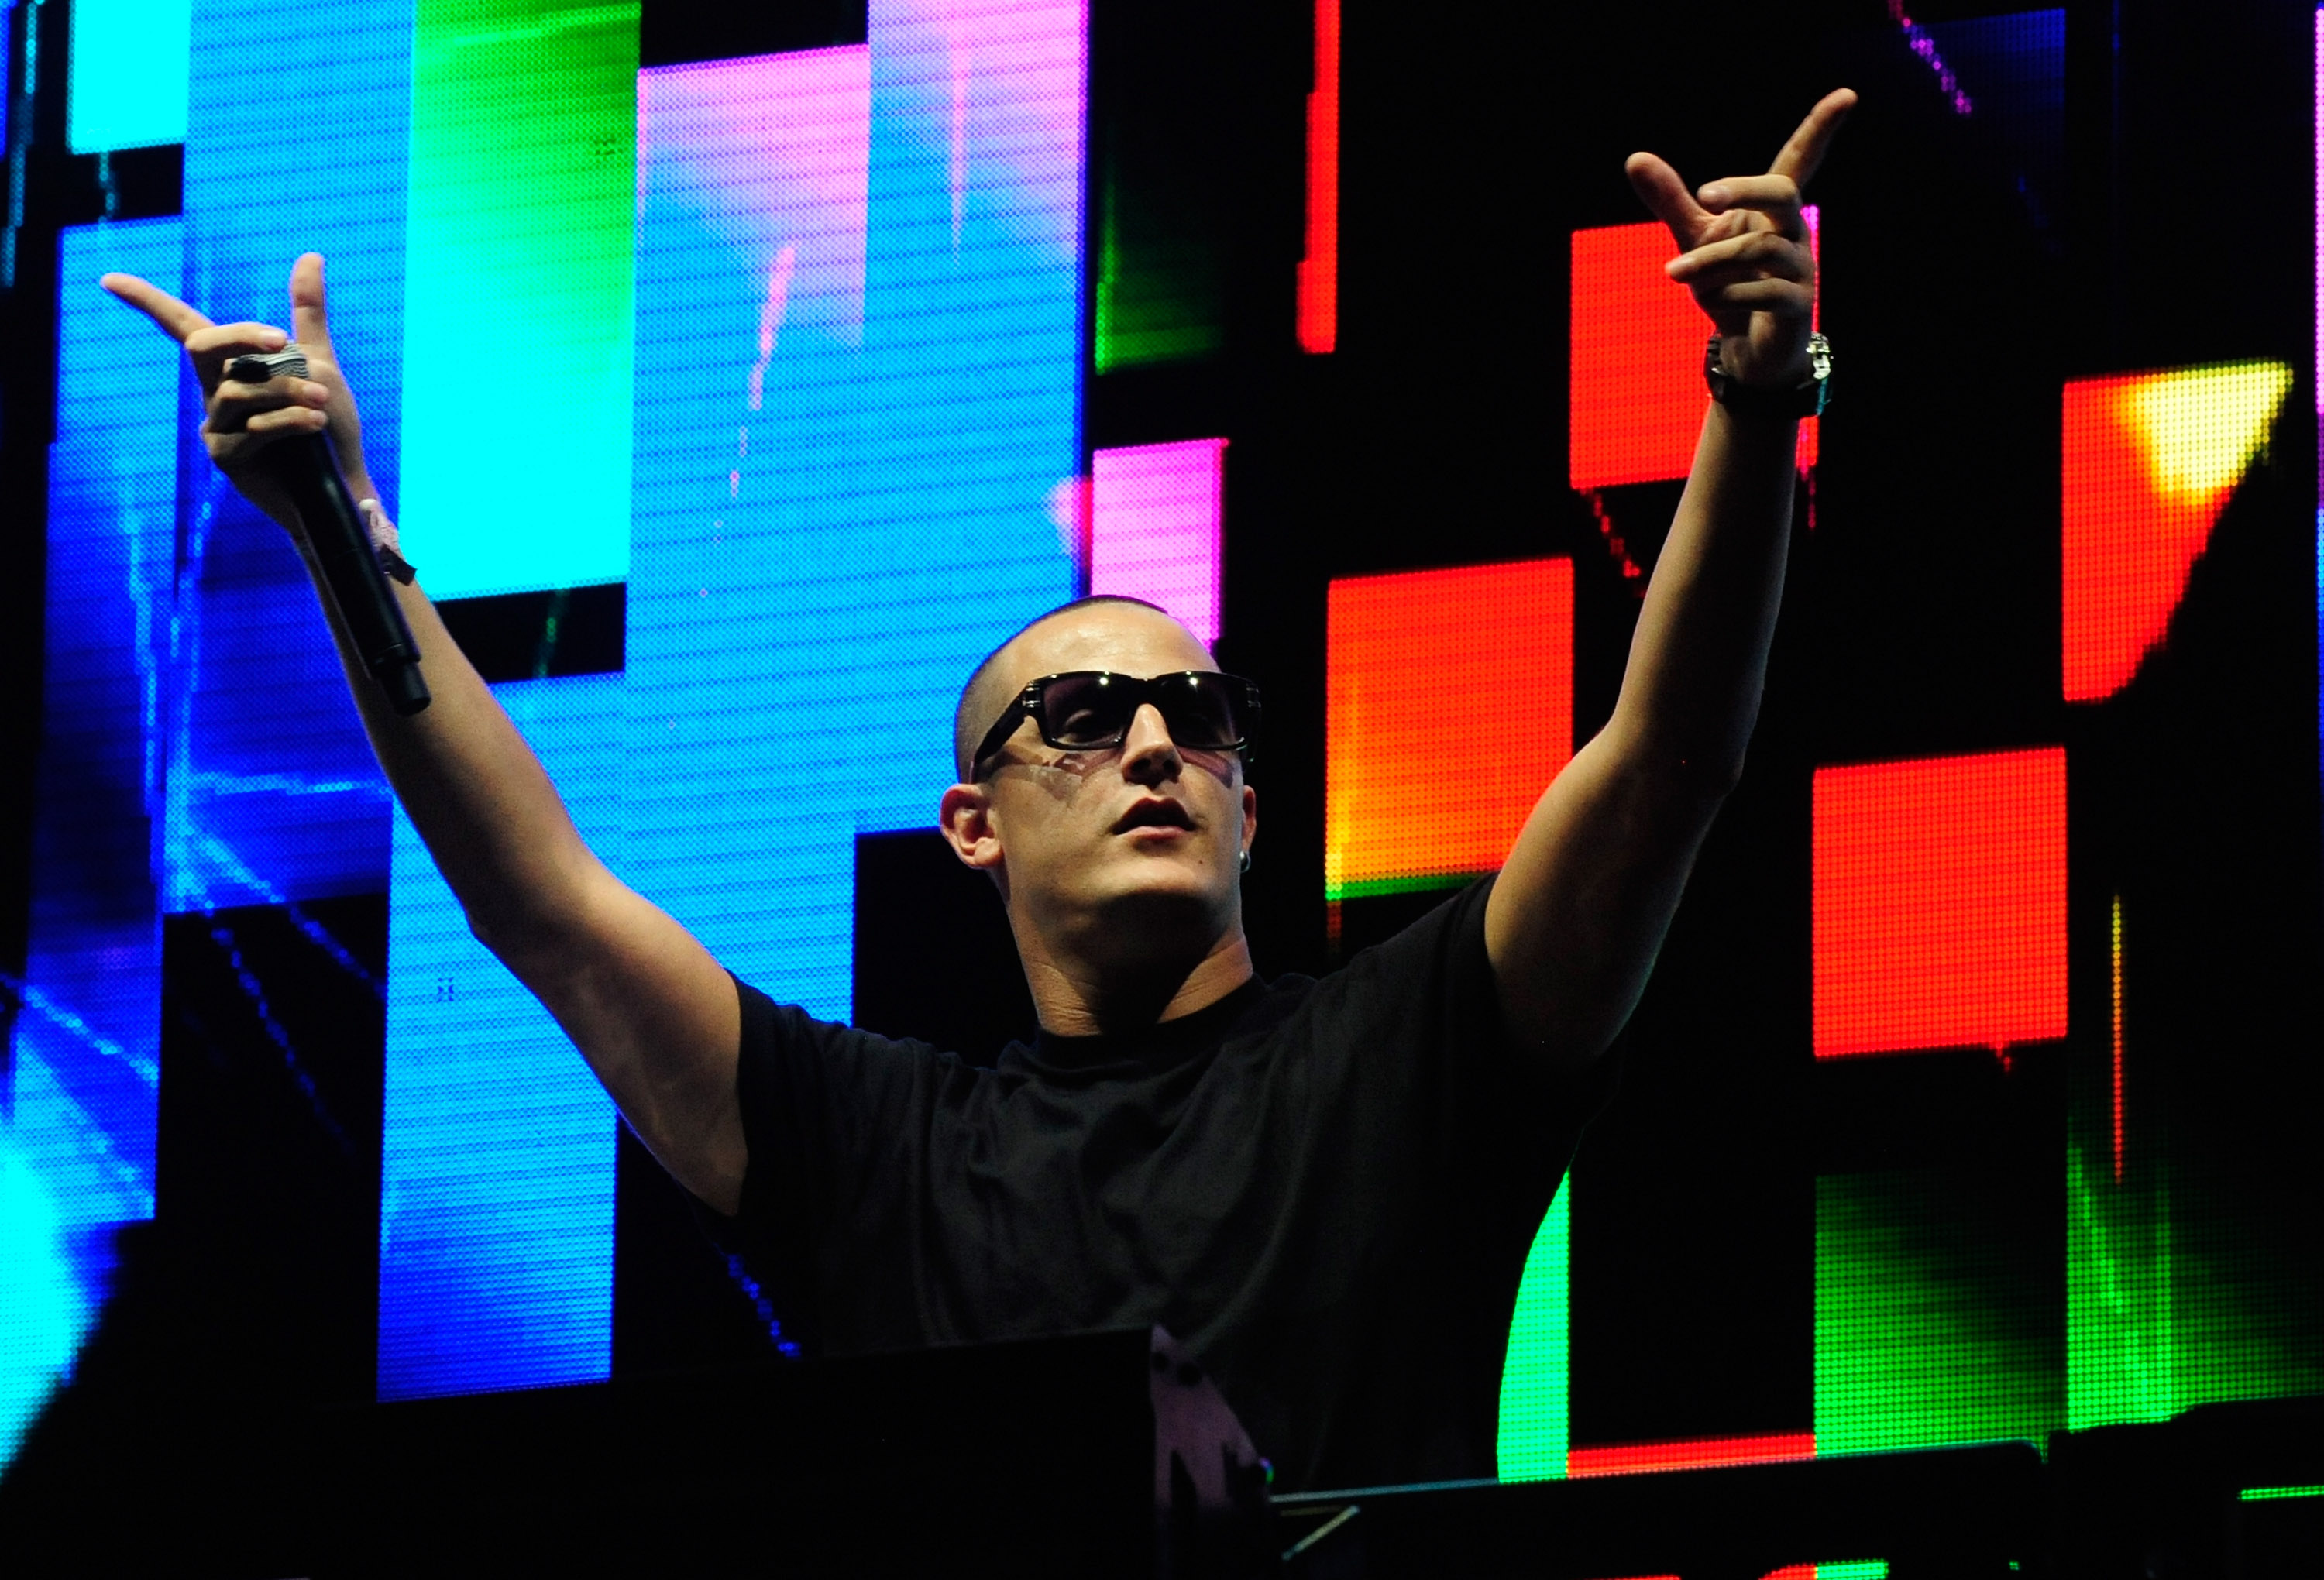 LAS VEGAS, NV - JUNE 23:  DJ Snake performs at the 18th annual Electric Daisy Carnival at Las Vegas Motor Speedway on June 23